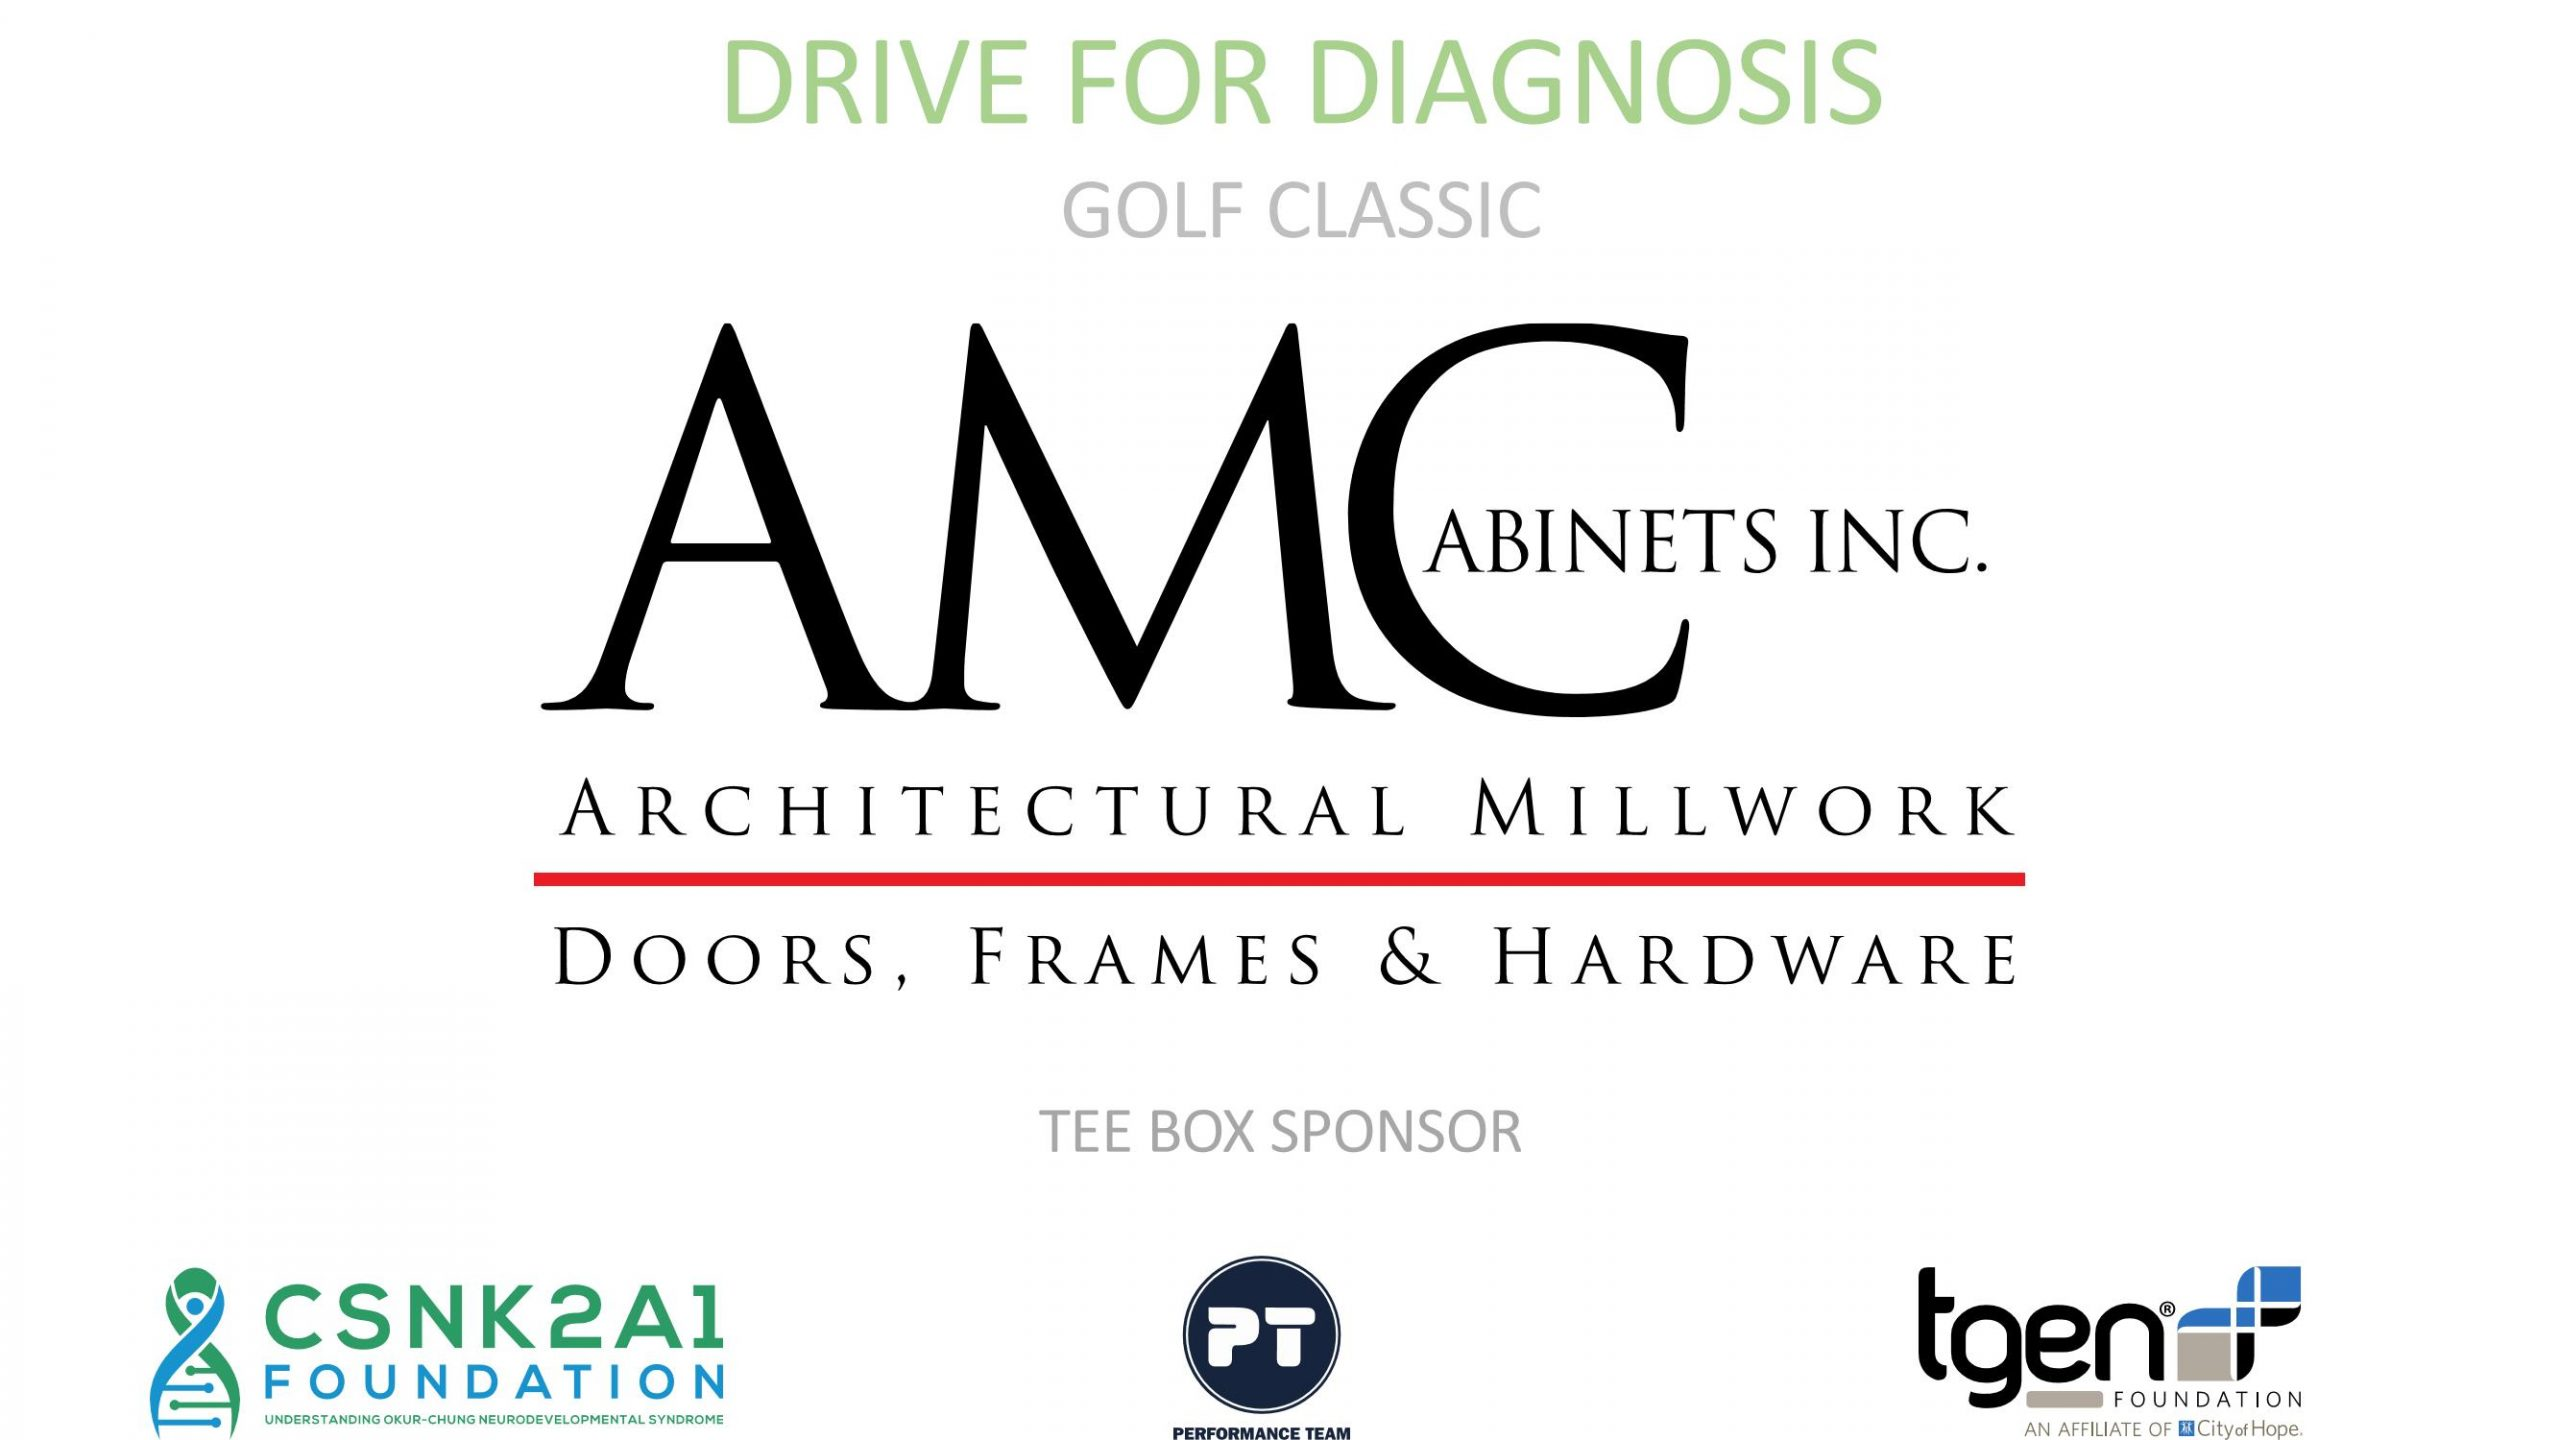 Tee Box Sponsor - AMC Cabinets Inc.